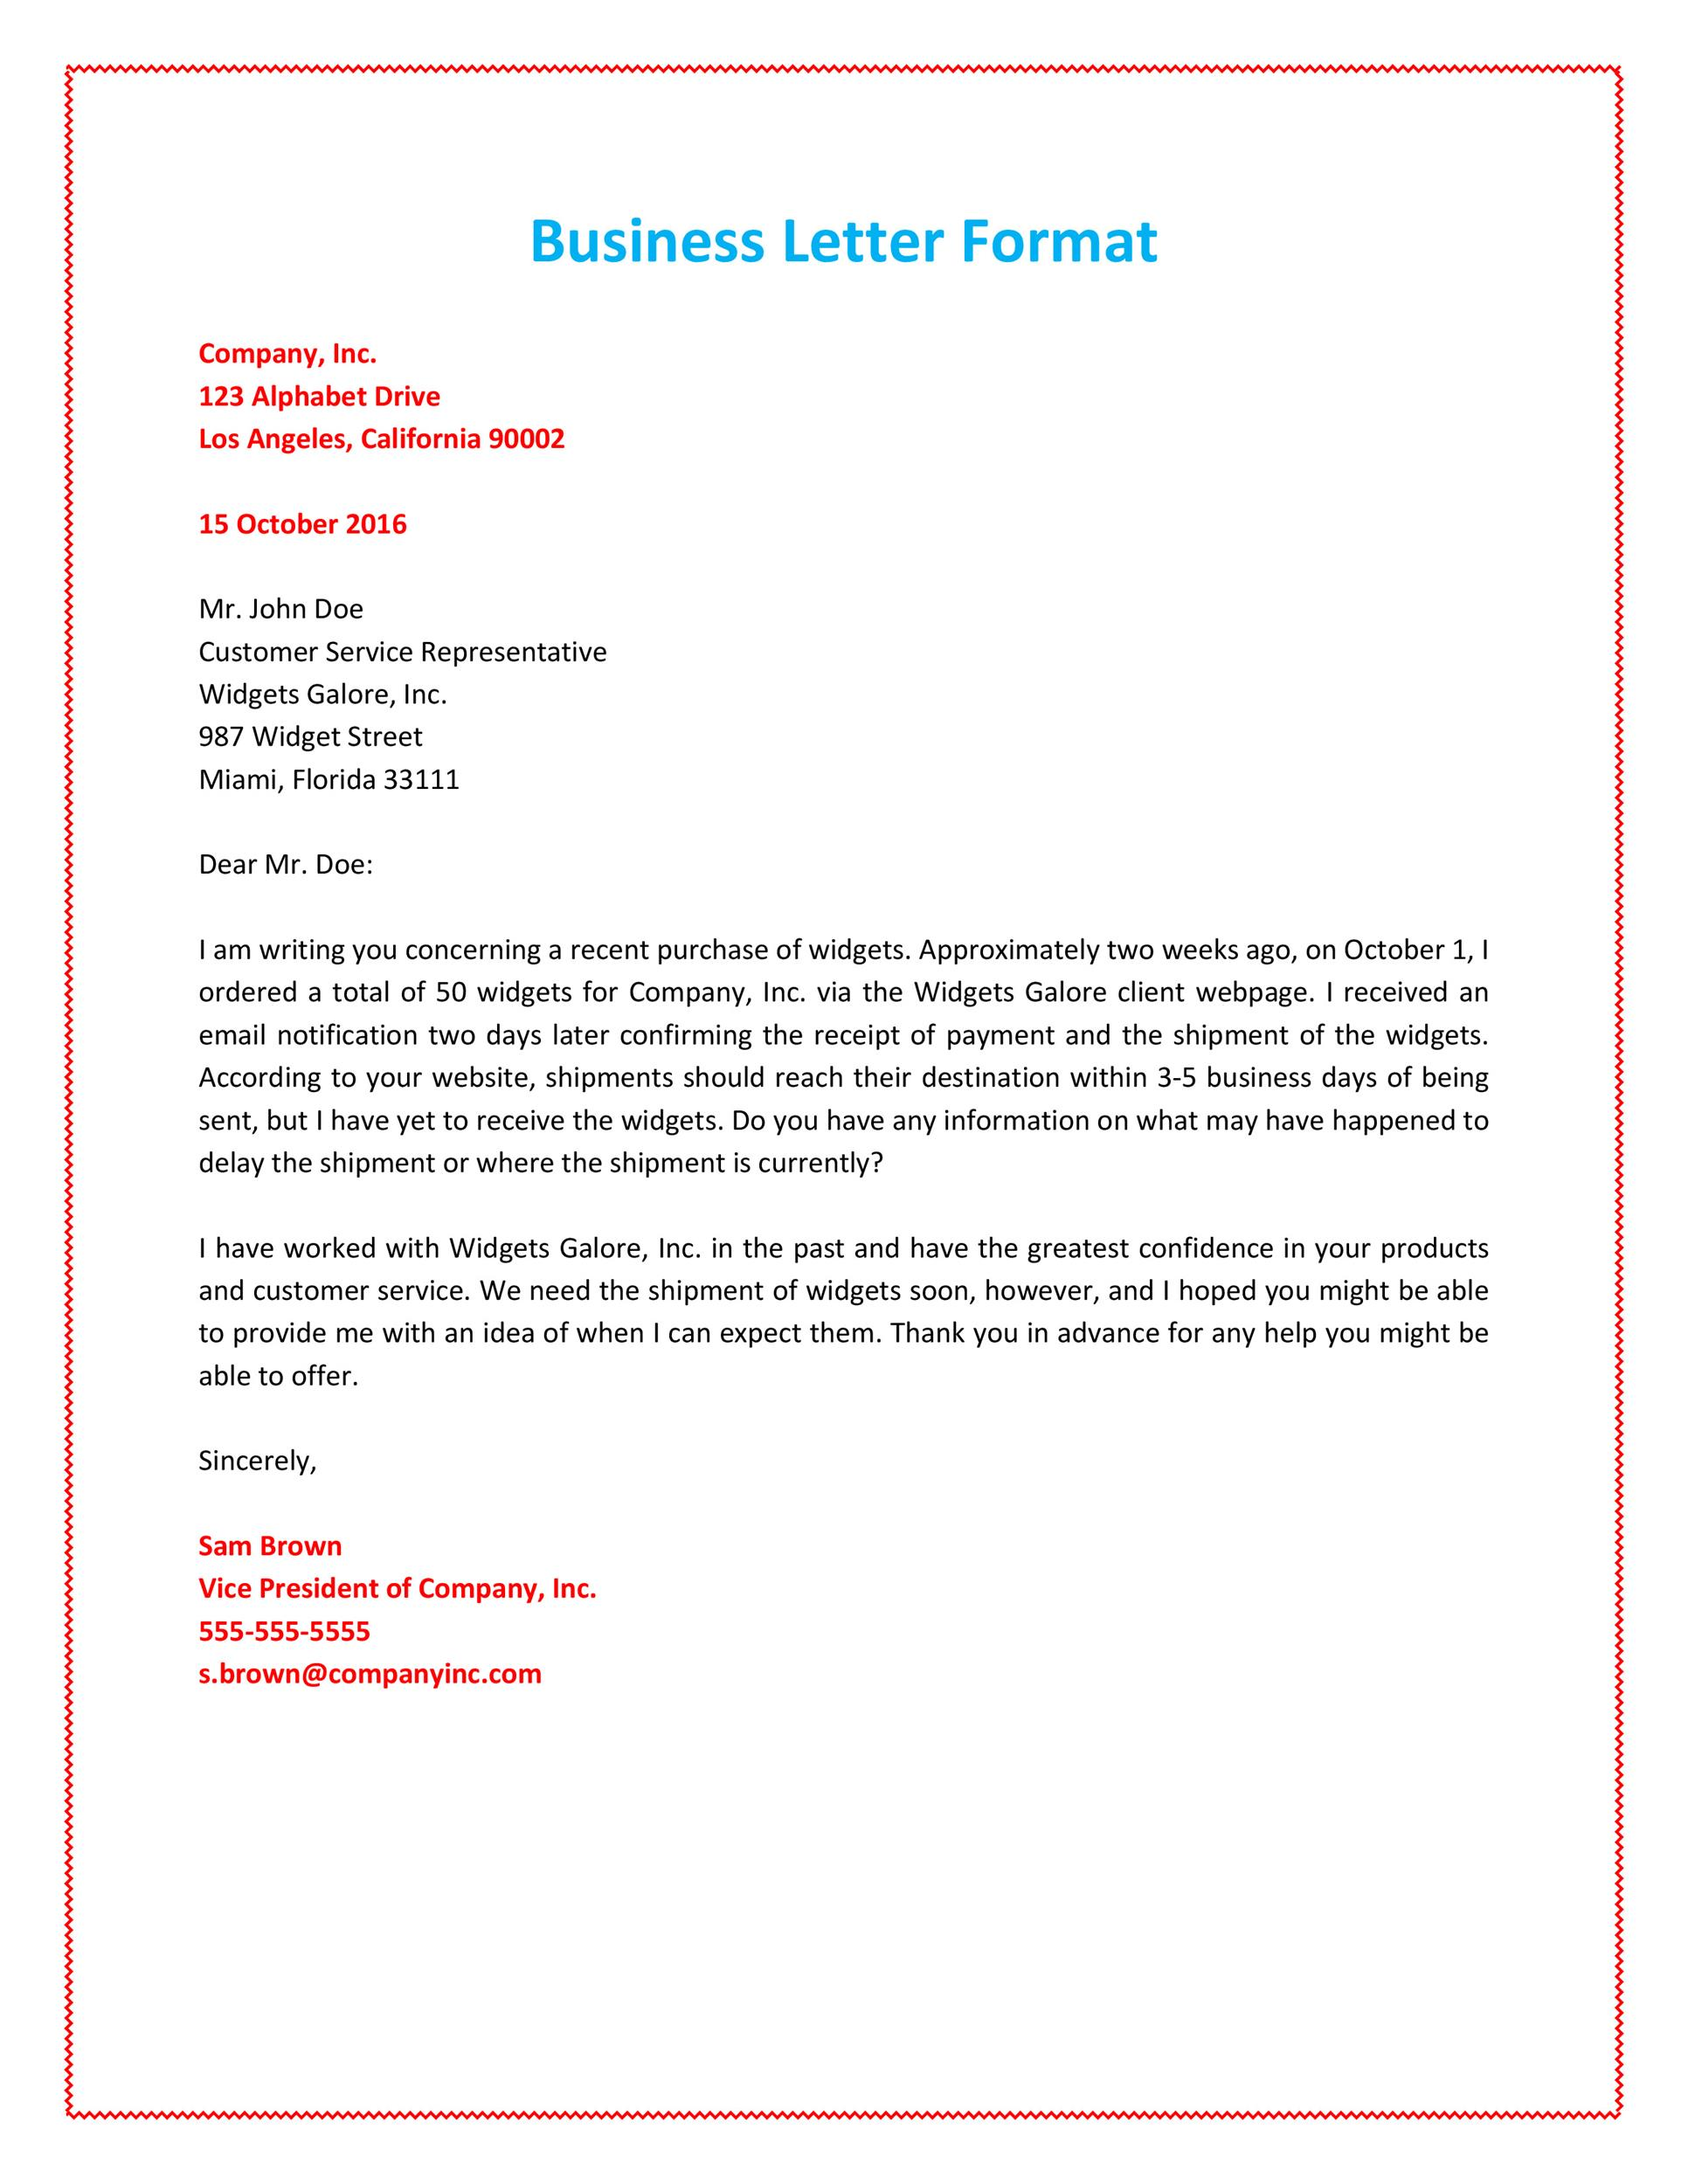 Proper Business Letter Format from templatelab.com